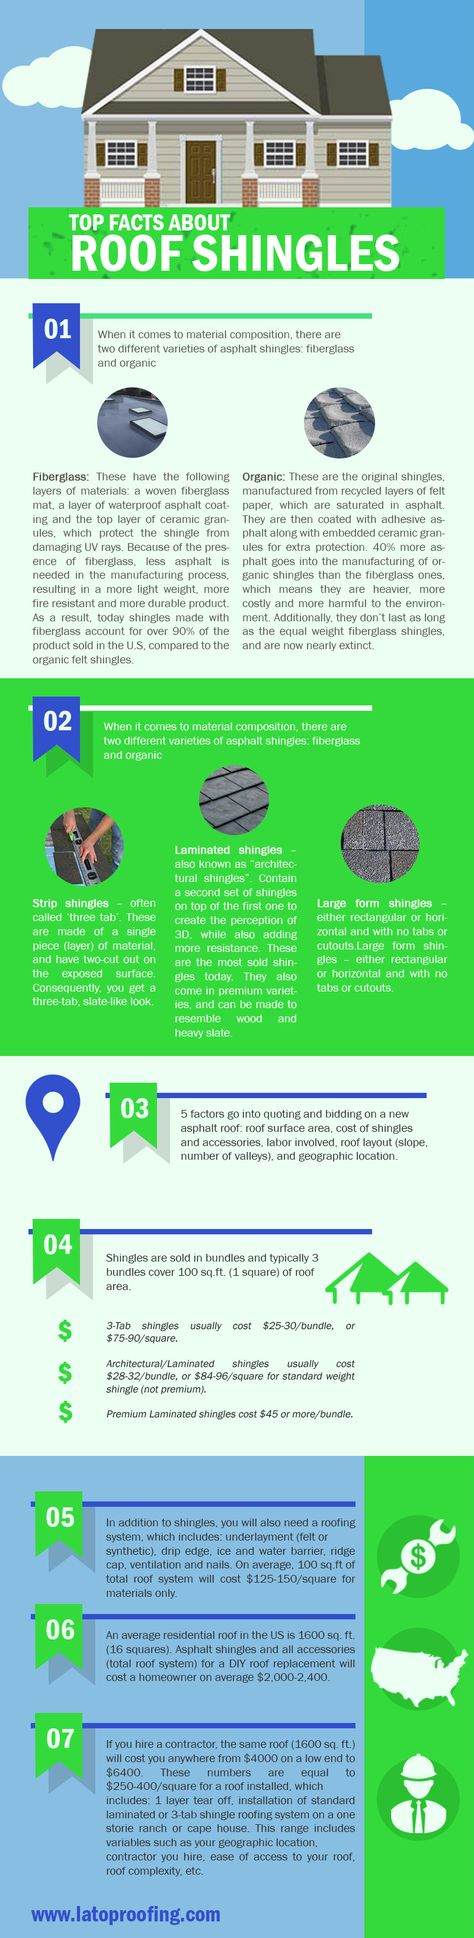 Top Facts About Roof Shingles Design Infographic Fiverr Socialmedia Sheikh3061 Www Fiverr Com Sheikh3061 Roof Shingles Shingling Roofing